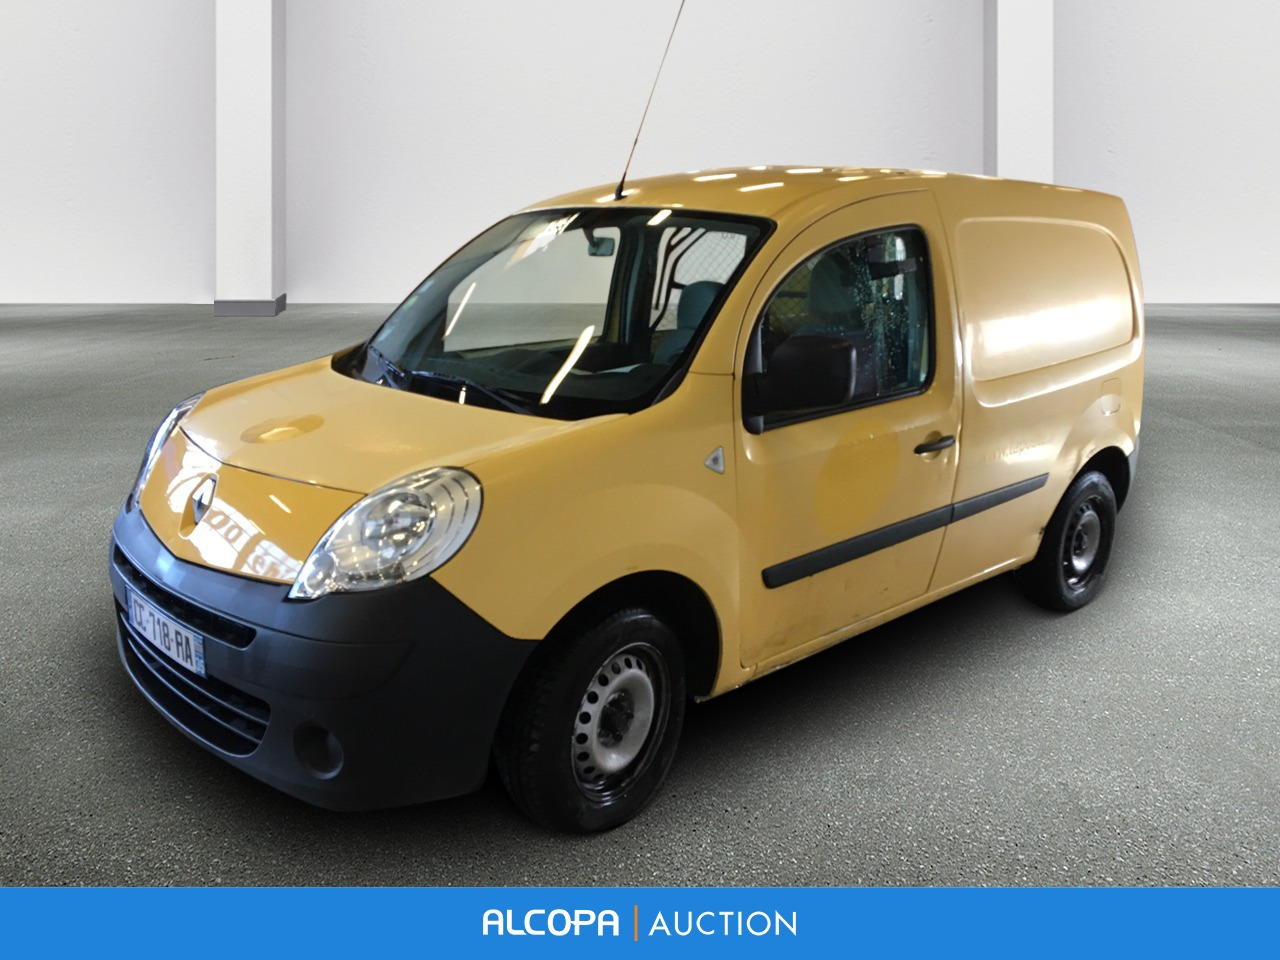 renault kangoo express kangoo express l1 1 5 dci 75 eco2 confort rennes alcopa auction. Black Bedroom Furniture Sets. Home Design Ideas